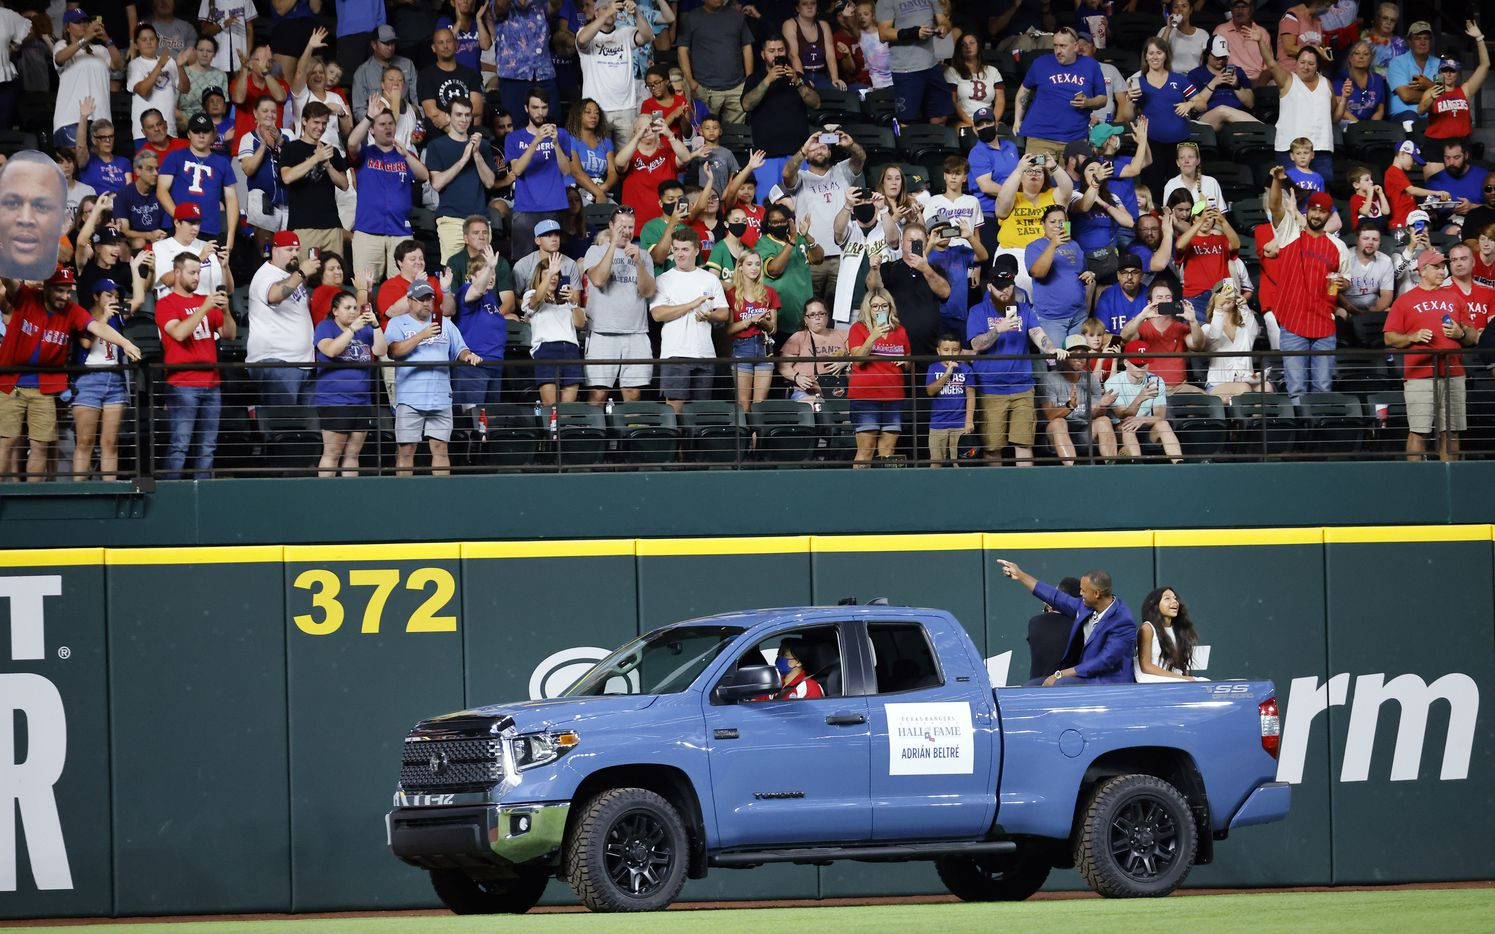 With his kids in the back of a pickup truck, former Texas Rangers third baseman Adrian Beltre waves to fans following his induction into the Texas Rangers Baseball Hall of Fame at Globe Life Field in Arlington, Saturday, August 14, 2021.(Tom Fox/The Dallas Morning News)